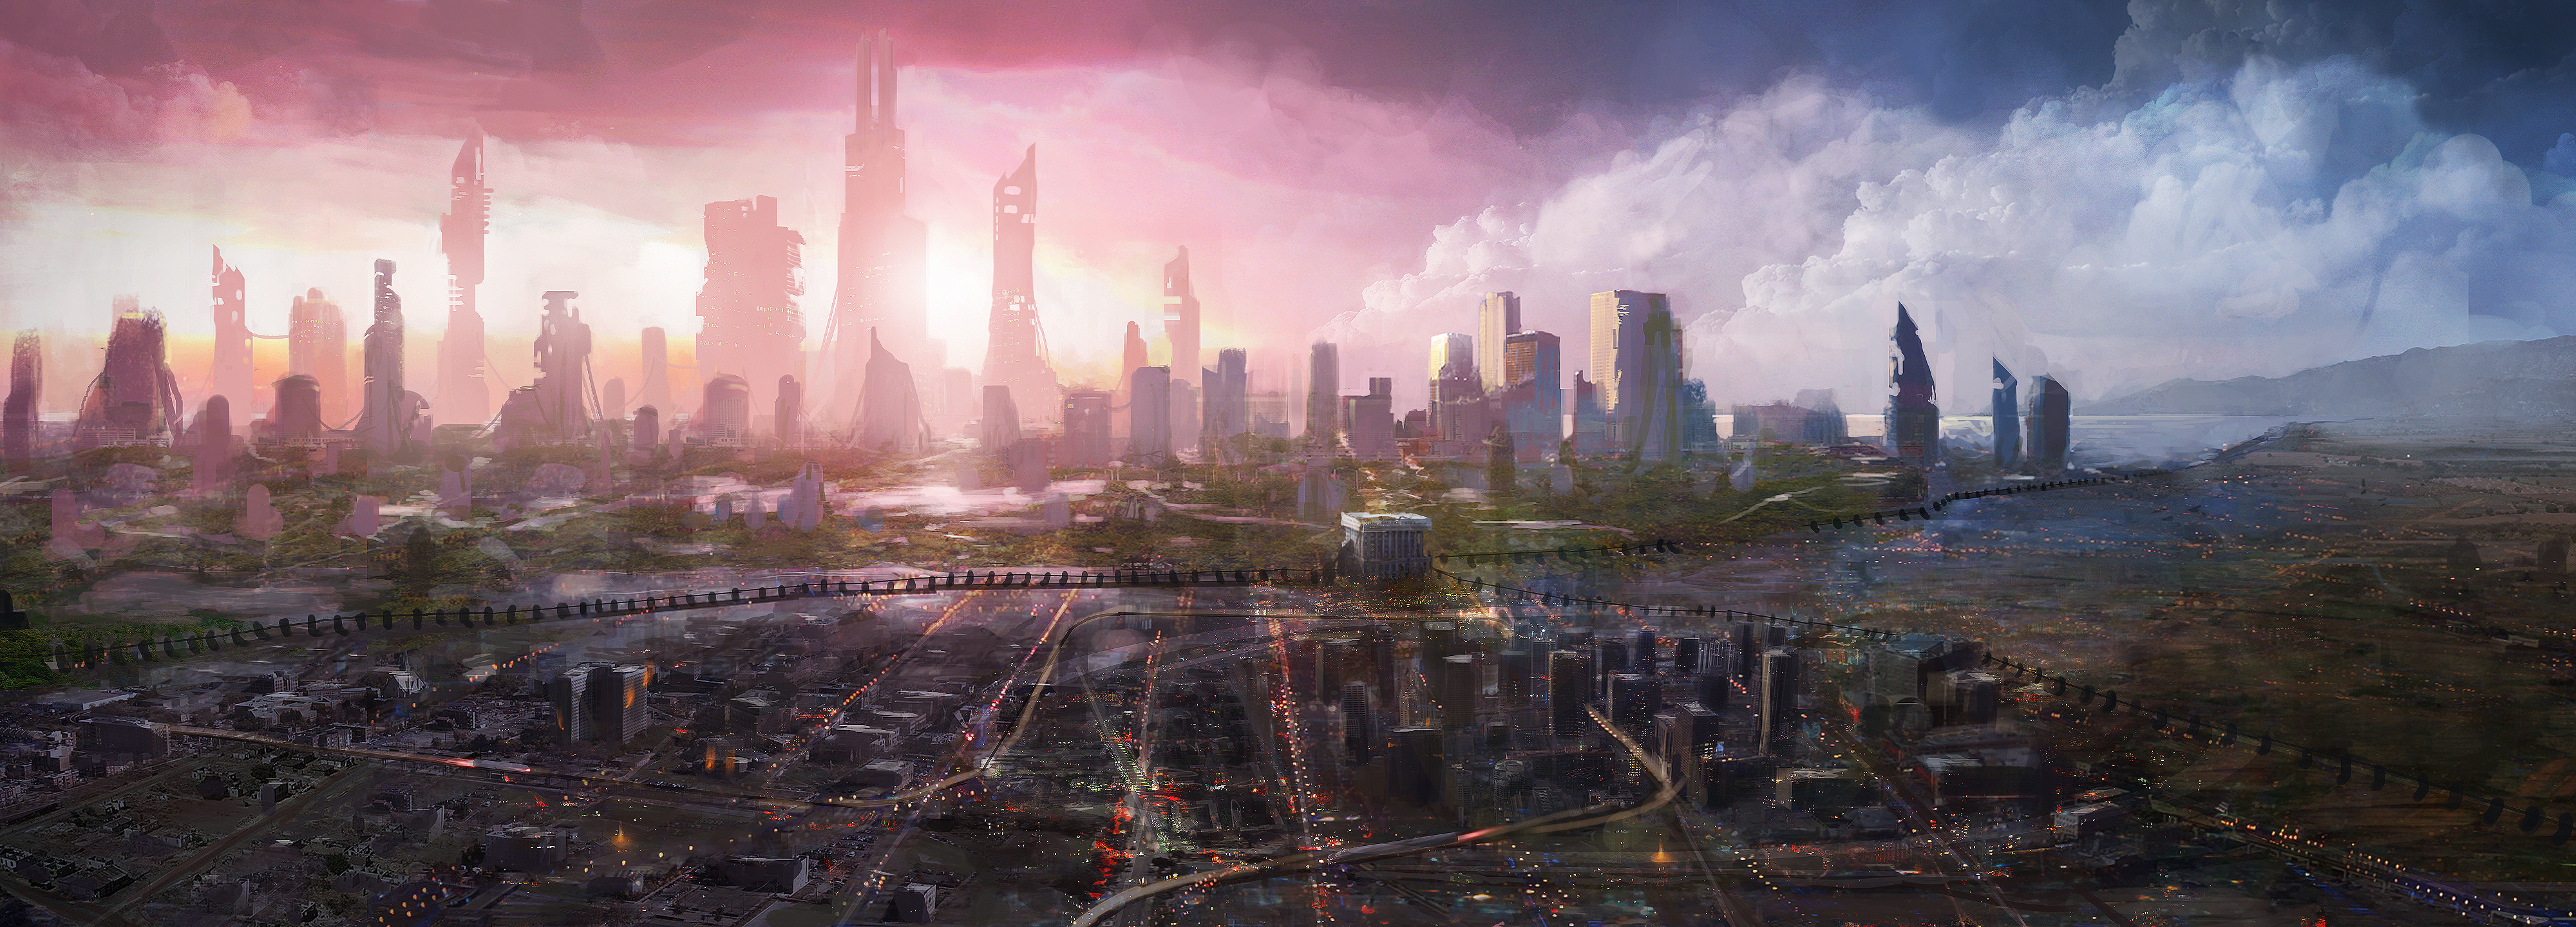 1 Future City HD Wallpapers  Backgrounds Wallpaper Abyss